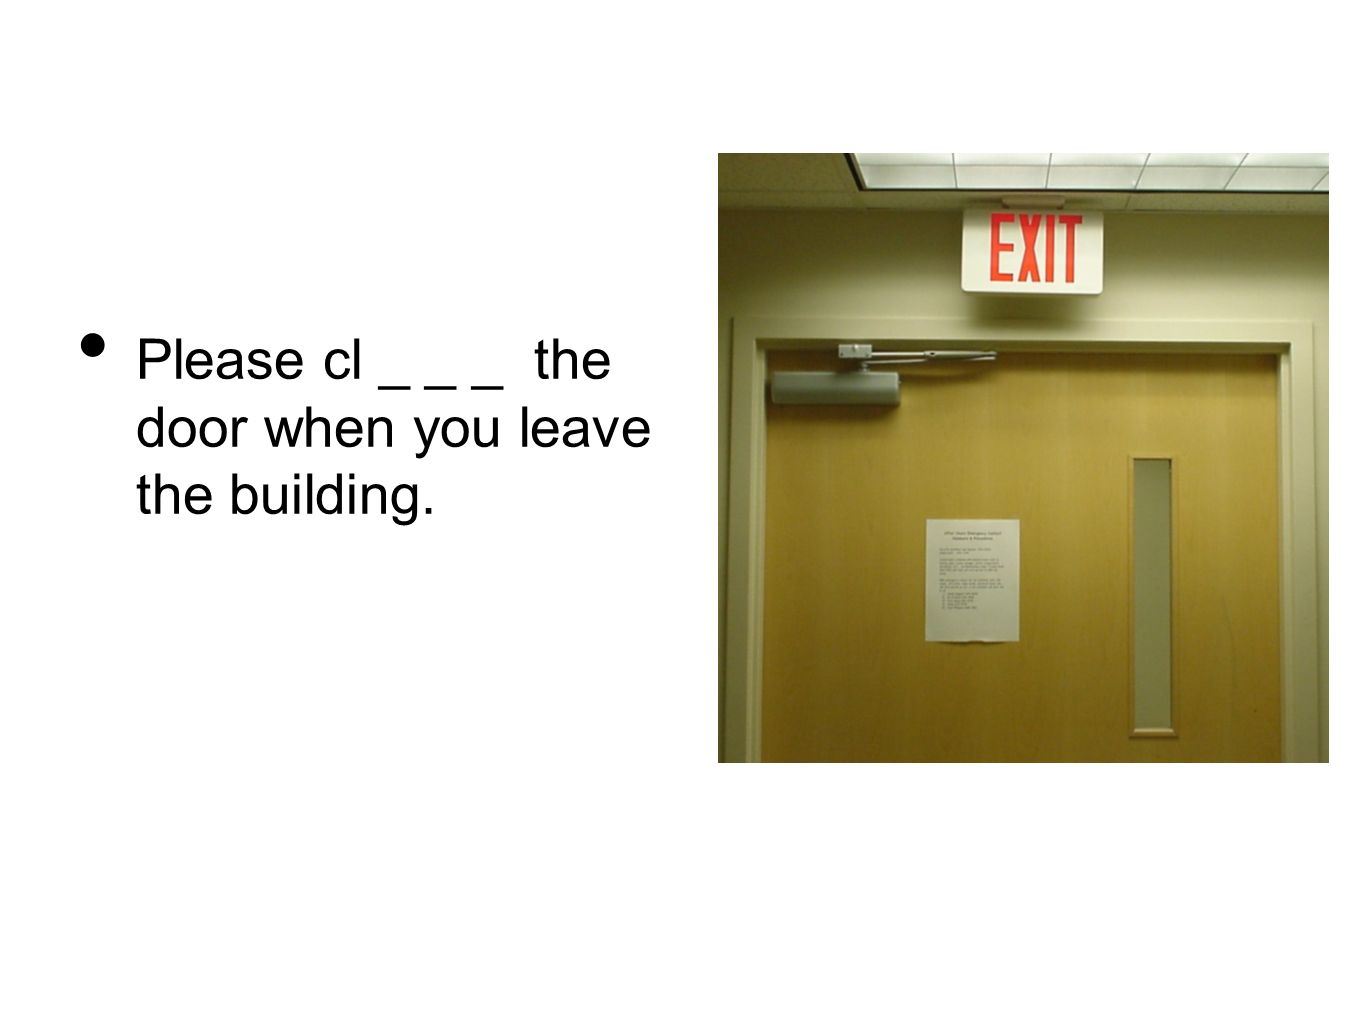 Please cl _ _ _ the door when you leave the building.